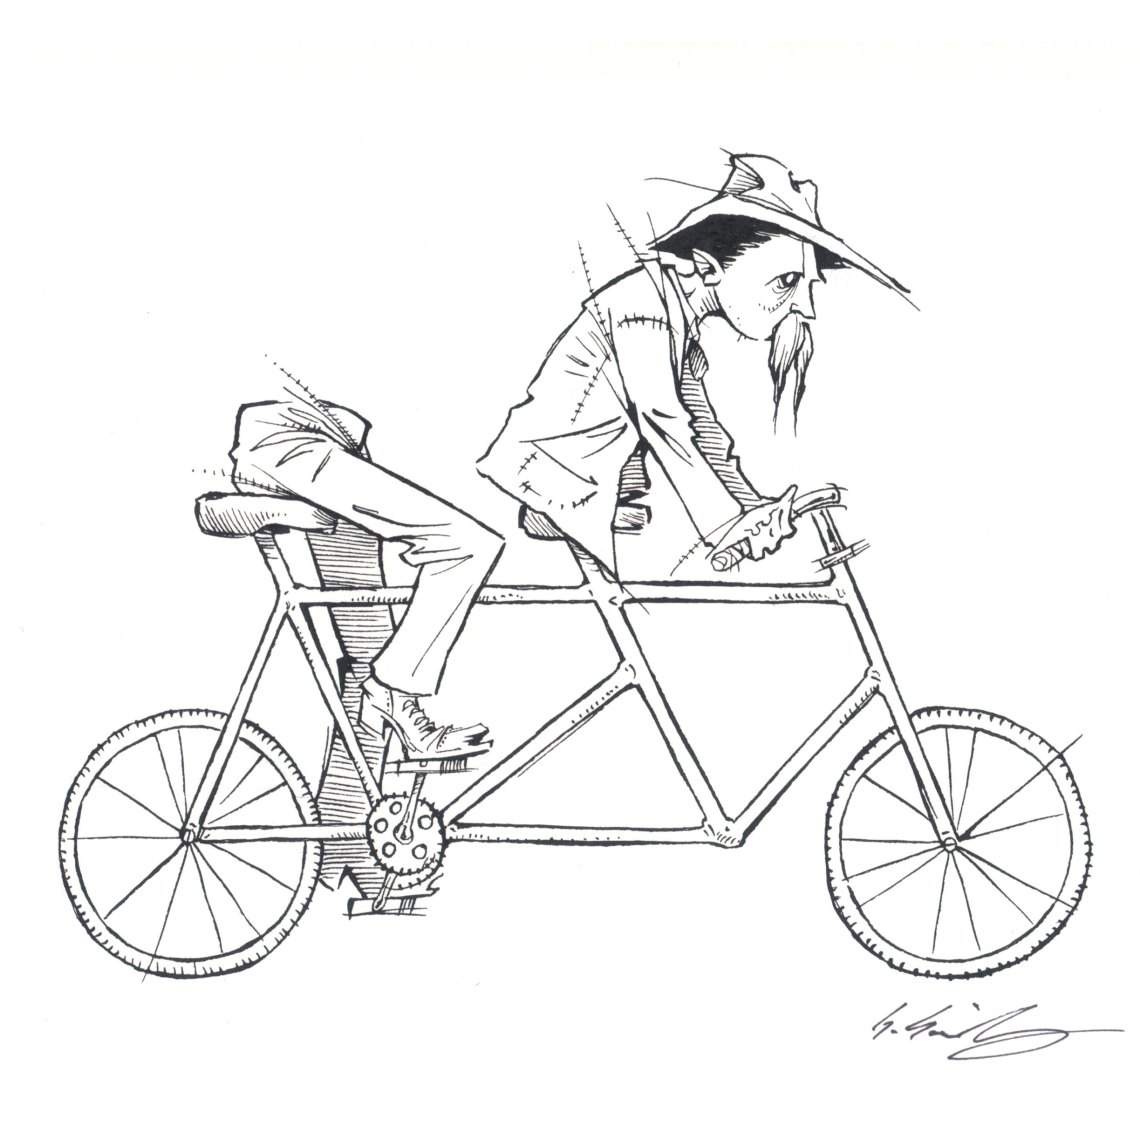 STORE BICYCLE42